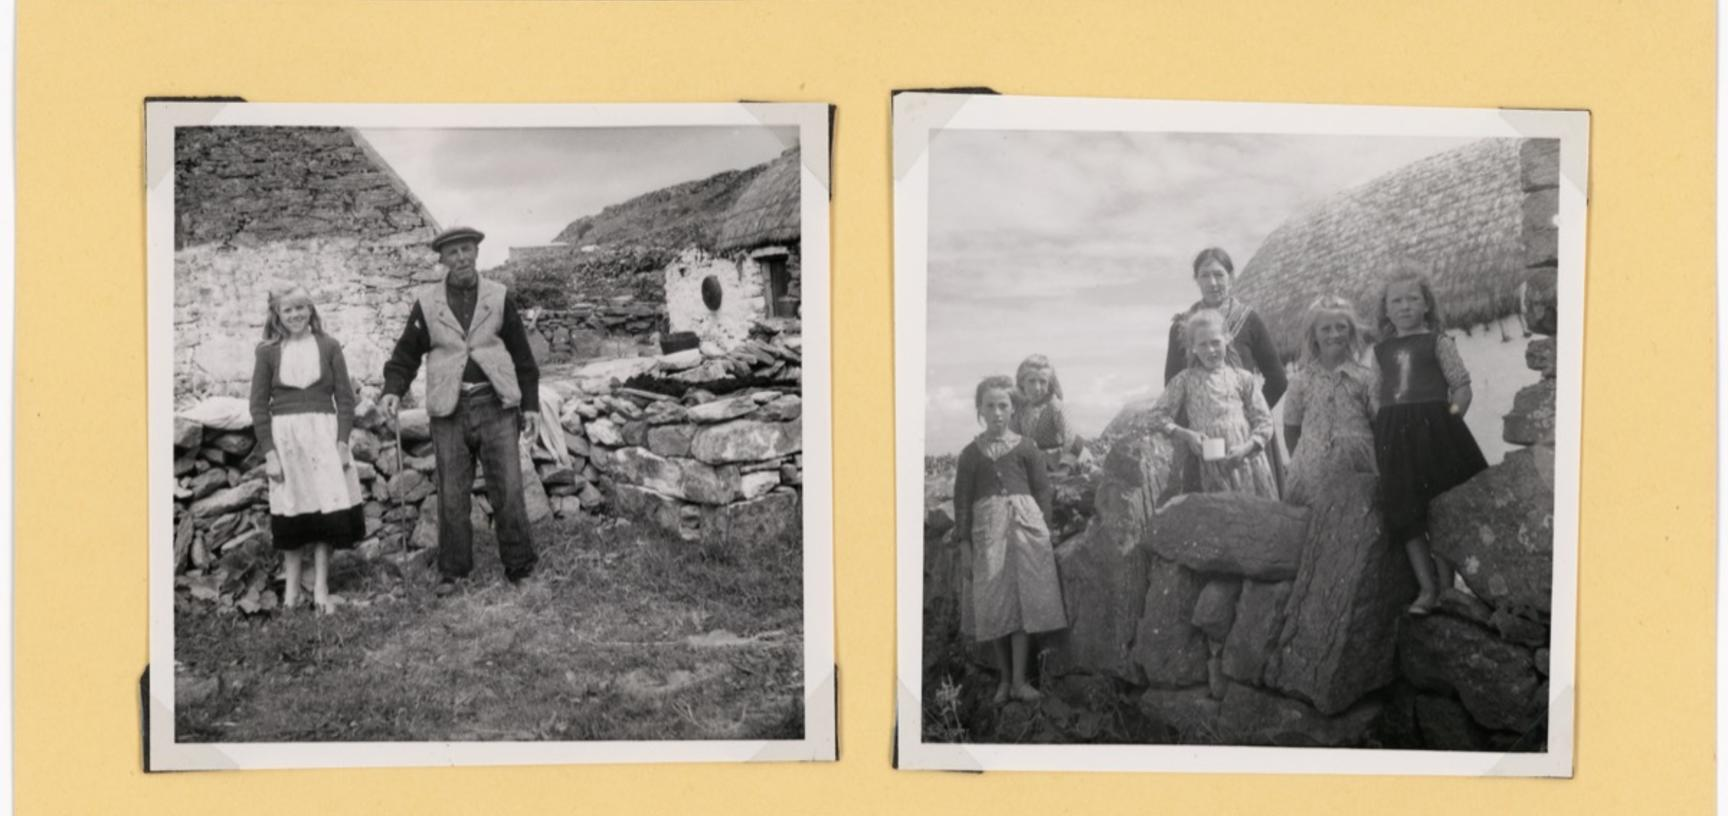 'Man wearing homespun tweed. Schoolteacher wearing flimsy colourful shawl' (typed caption). Photographs by Ingegärd Vallin. Aran Islands, County Galway, Ireland. 1949.